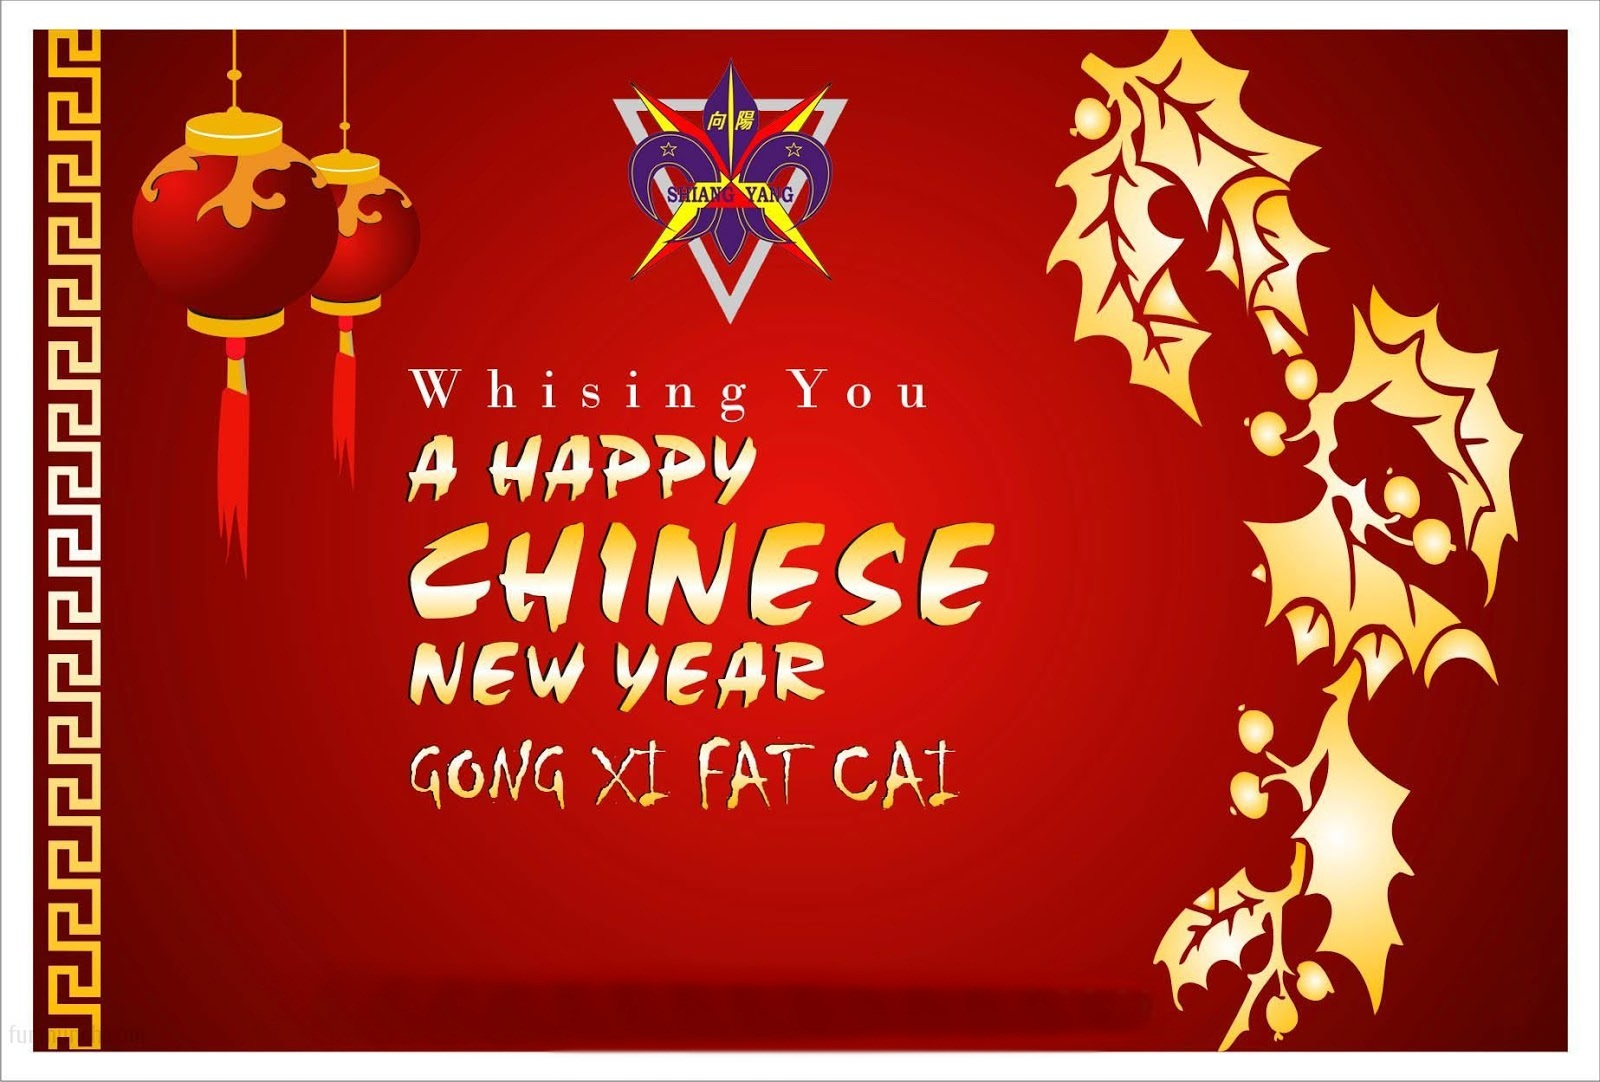 Happy Chinese New Year 2015 Wallpaper Wide 13215: Gong Xi Fa Cai Wallpaper Widescreen #12842 Wallpaper